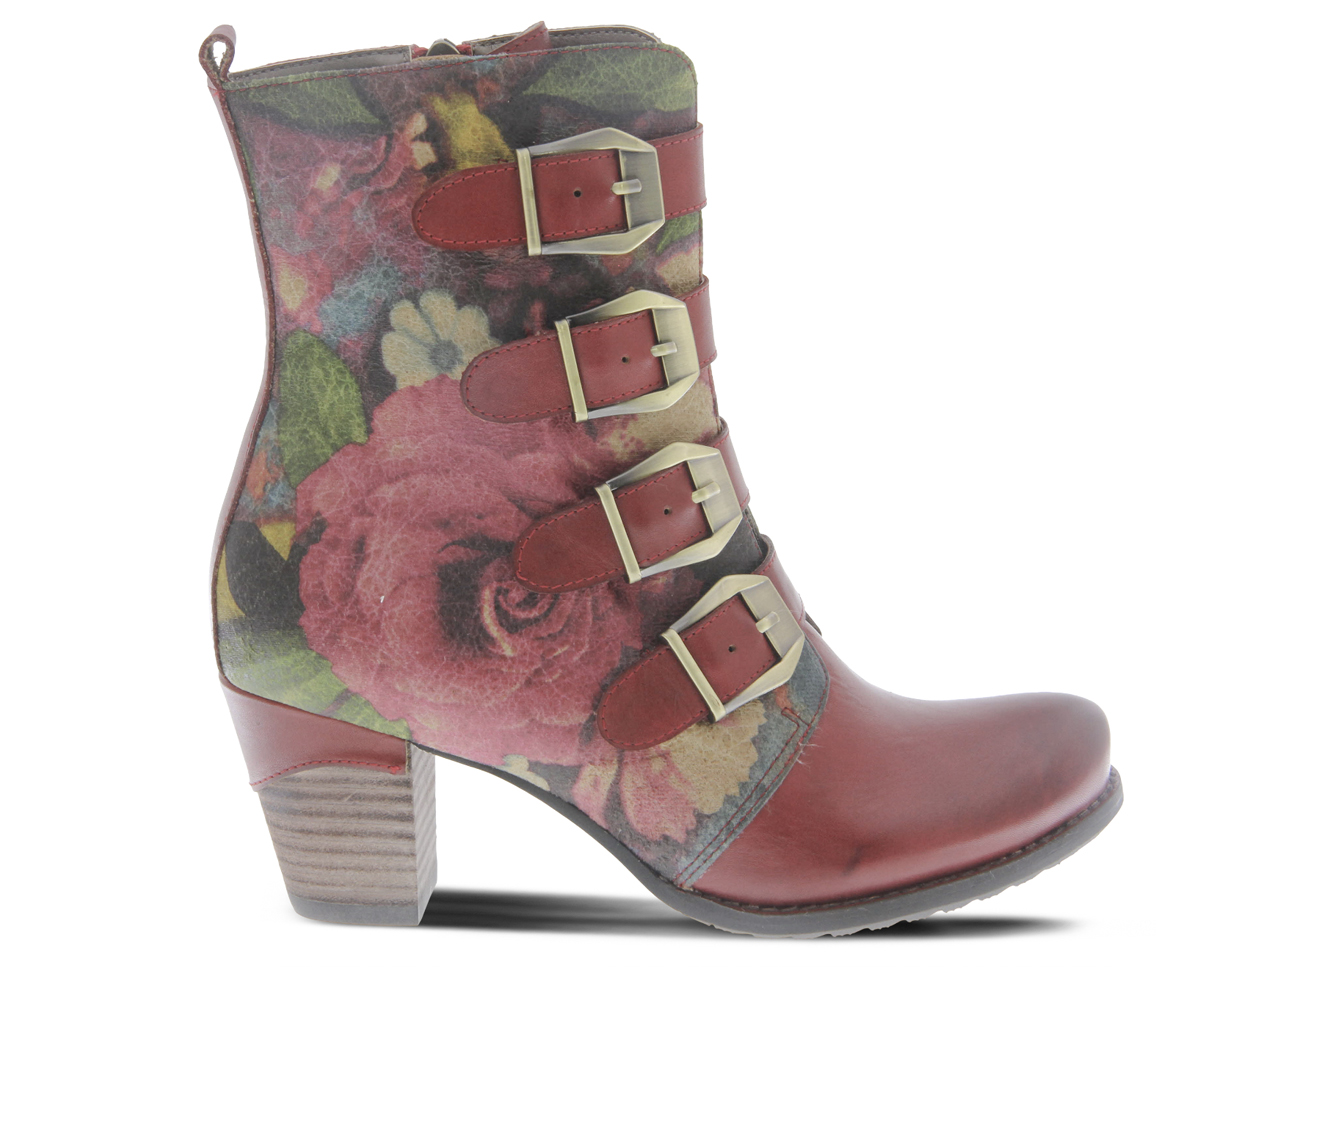 L'Artiste Lahae Women's Boots (Red Leather)